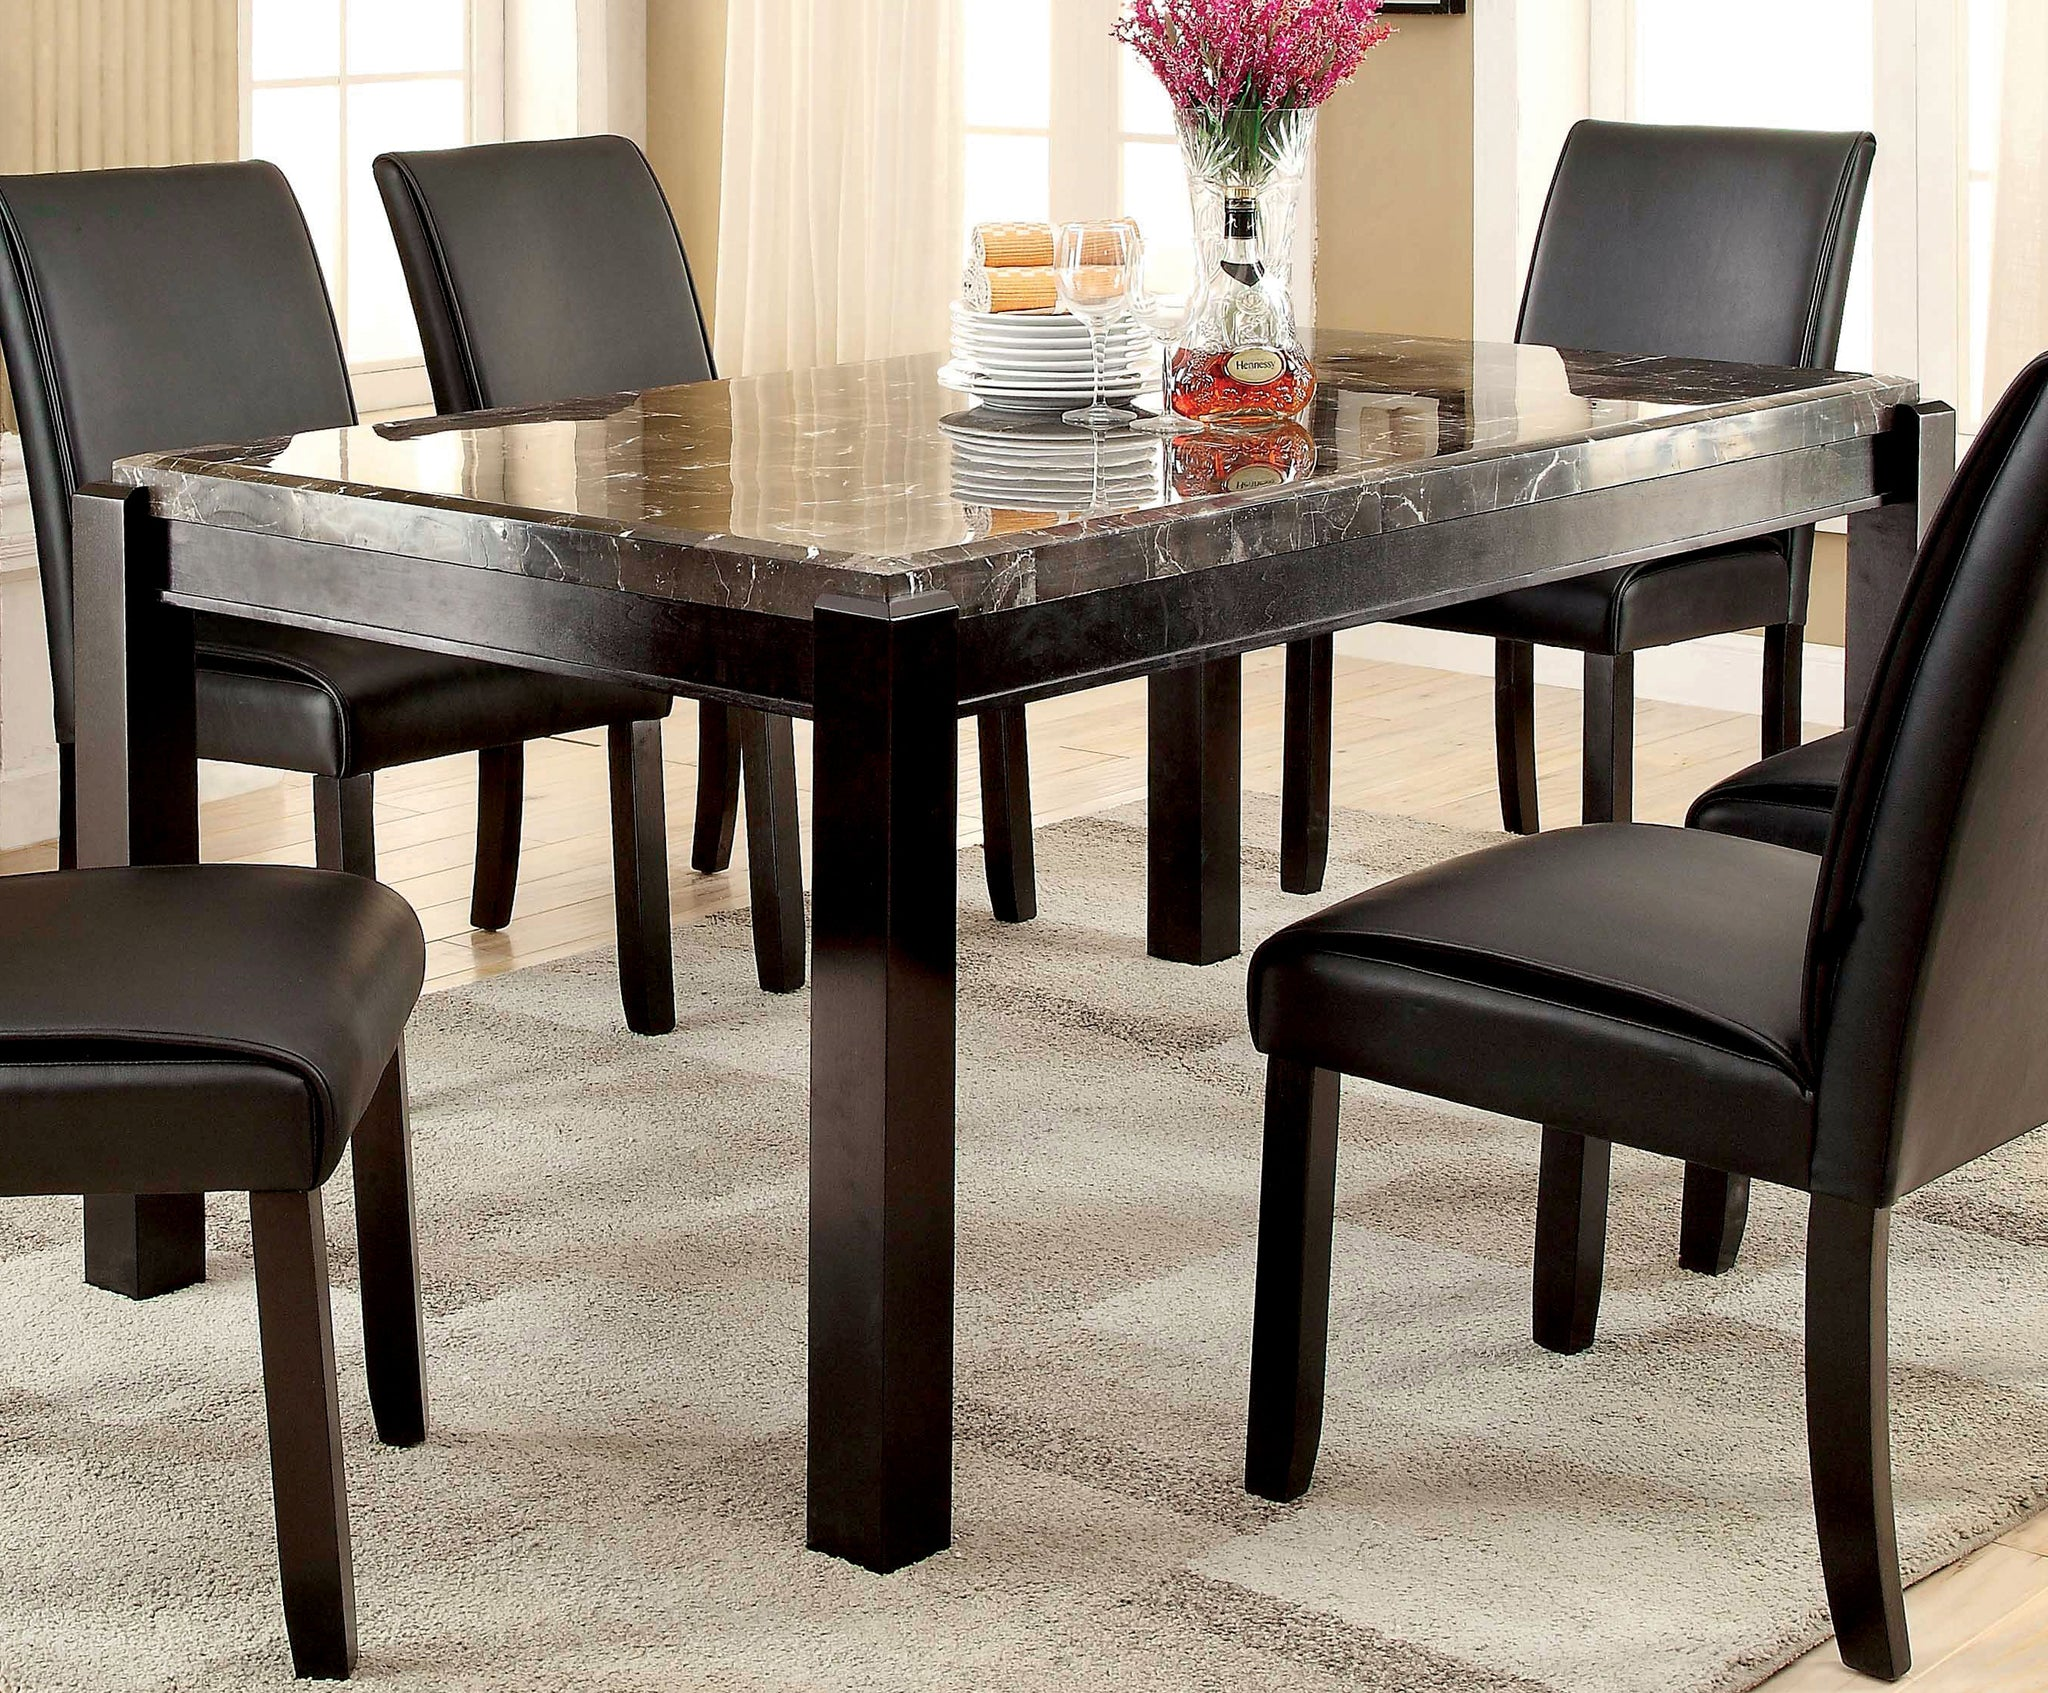 Roweena Contemporary Dining Table, Ivory and Dark Walnut